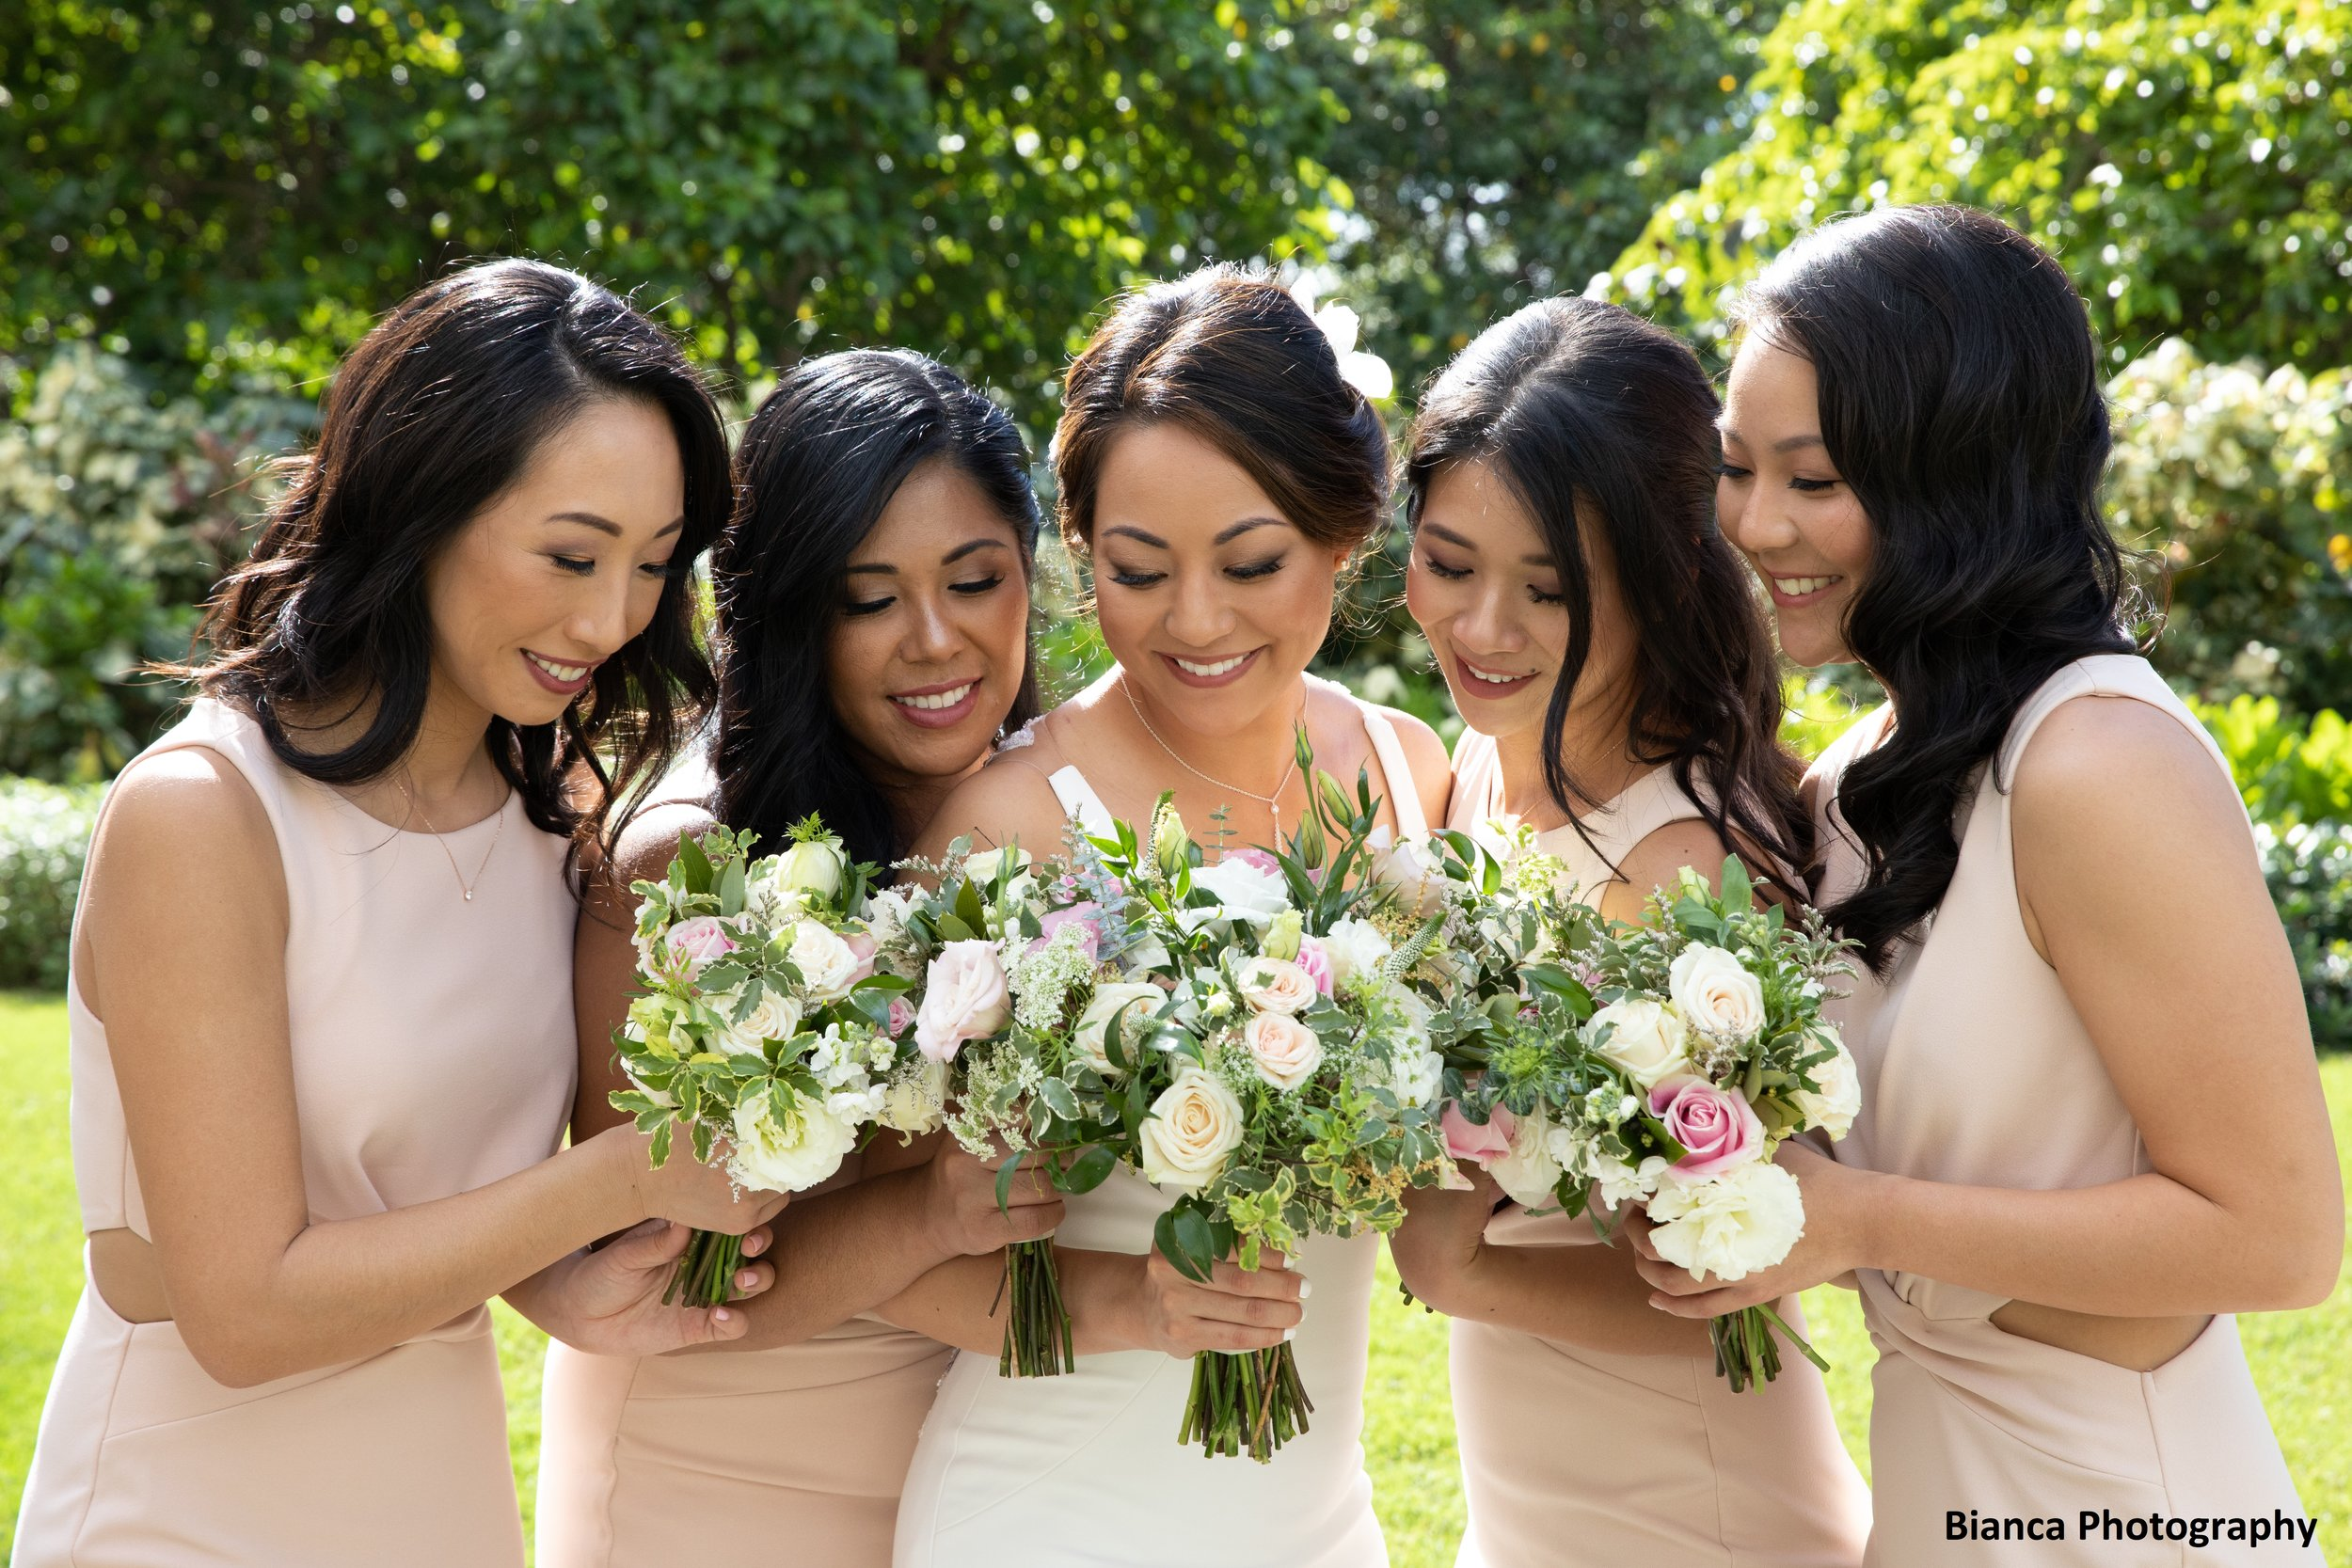 W_0444 (Bianca Photography).jpg